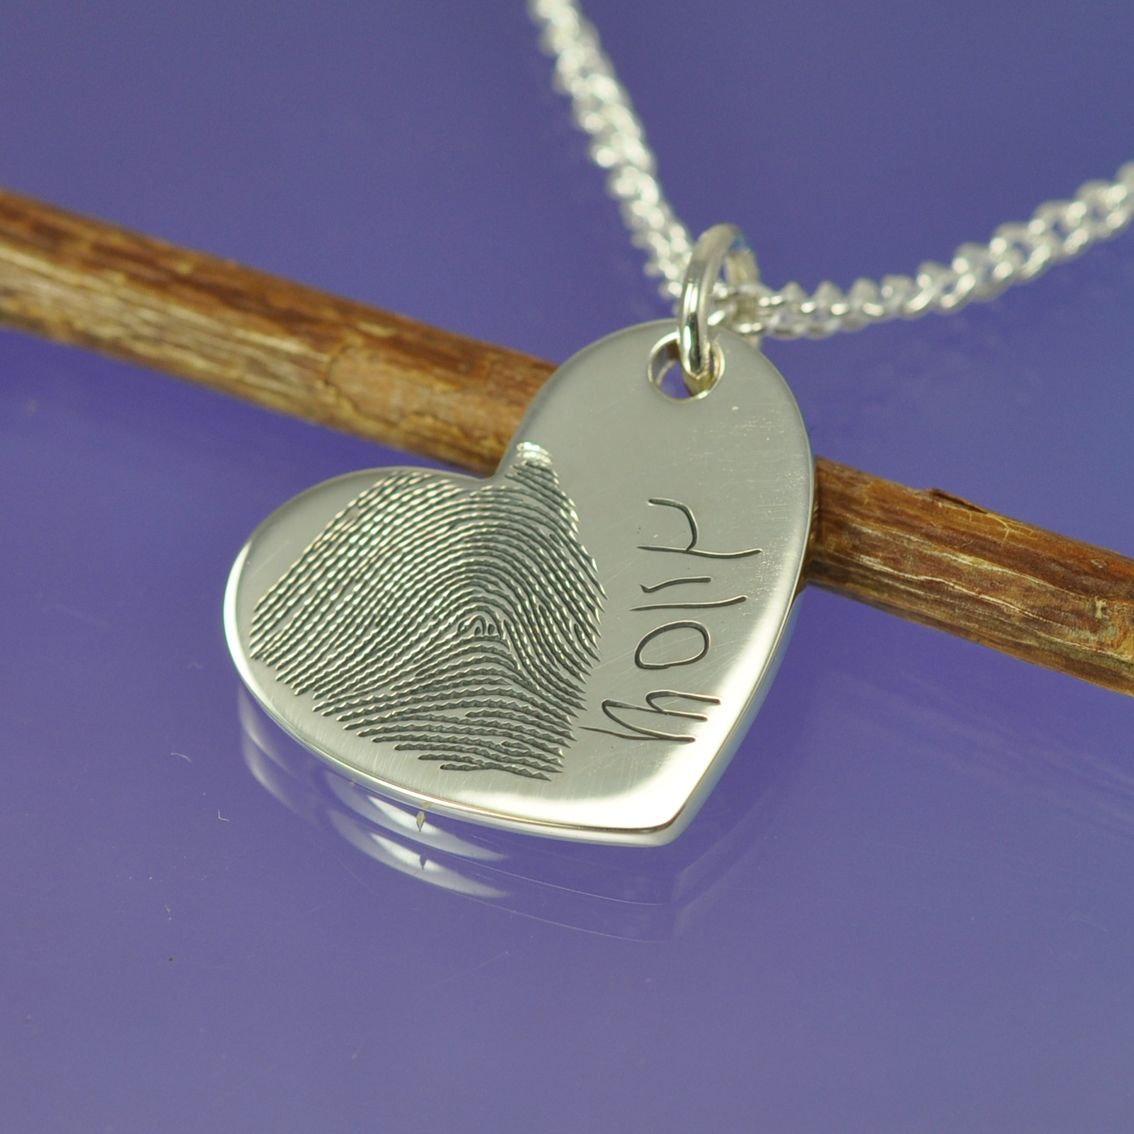 jewelry art finger print fingerprint uncommongoods product necklace thumbnail